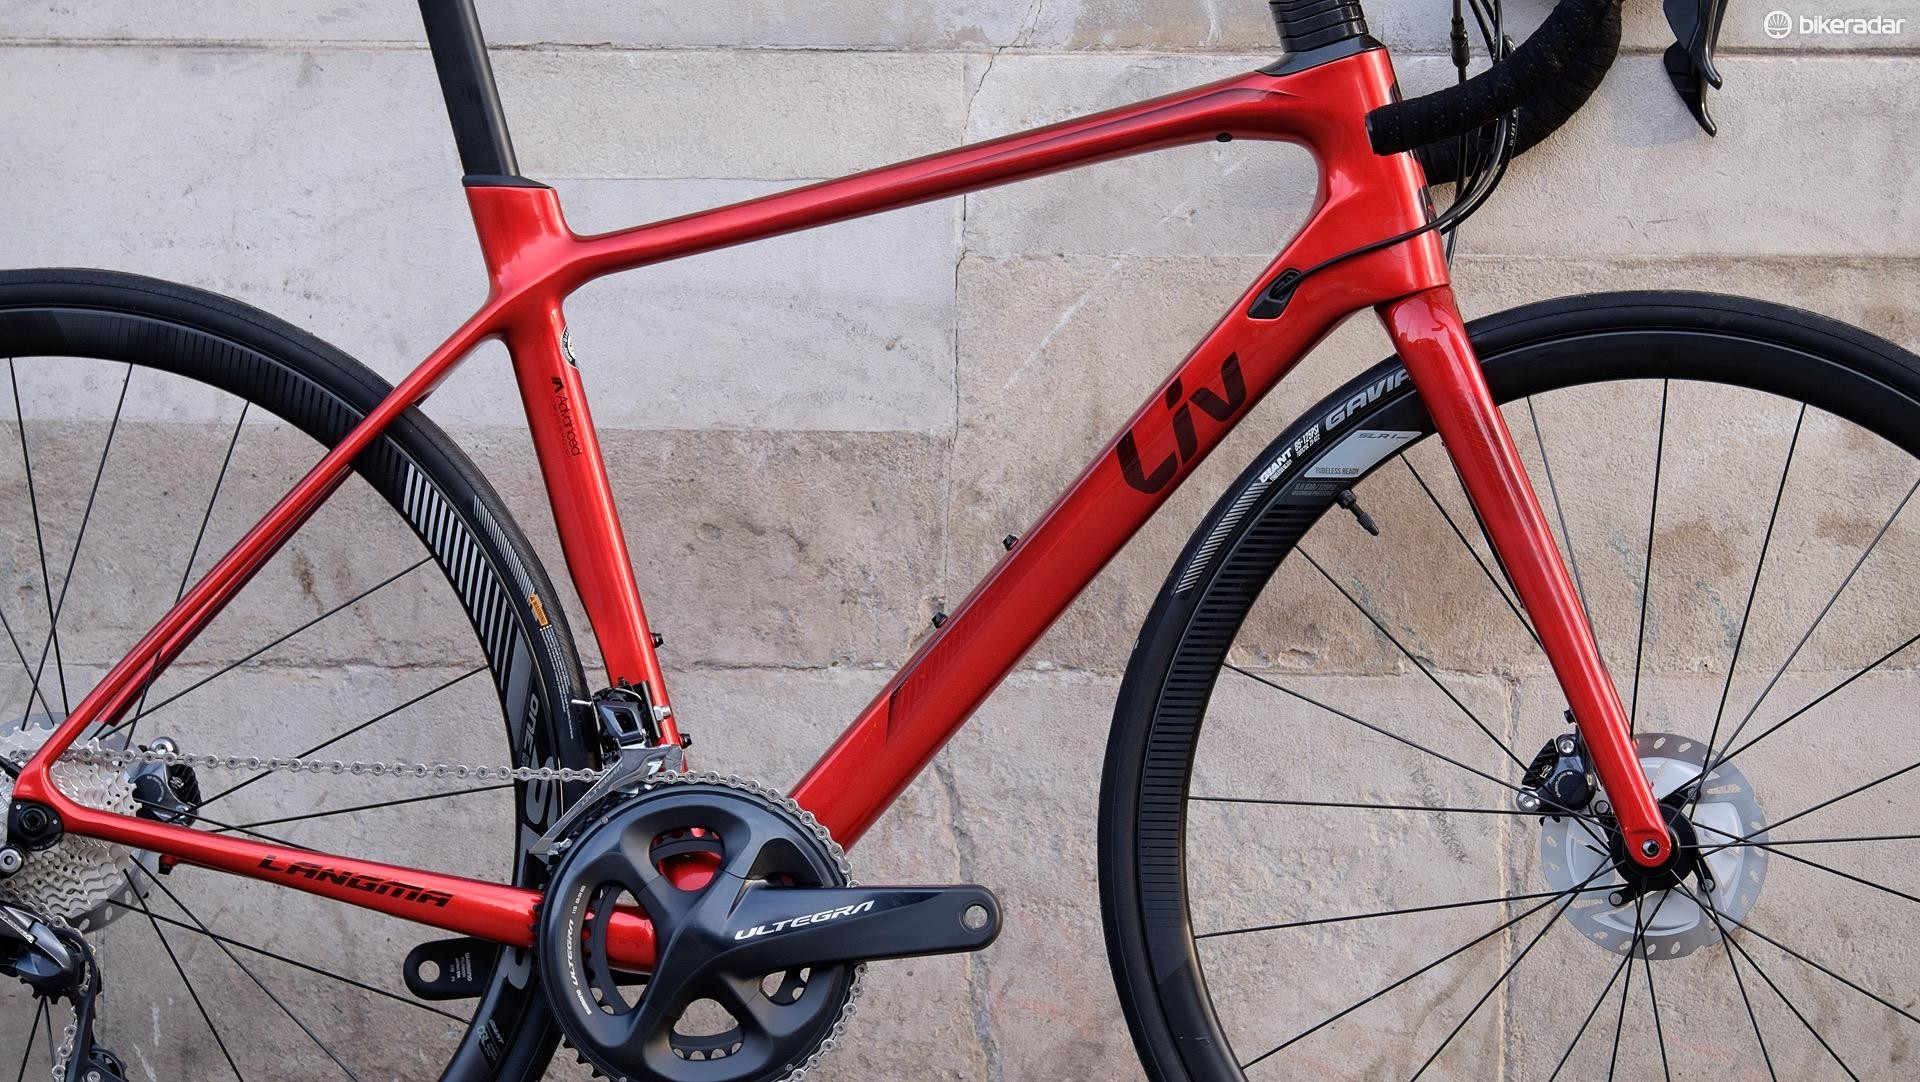 The frame has aerodynamic elements such as a bladed tube shape on the seat tube and seatpost